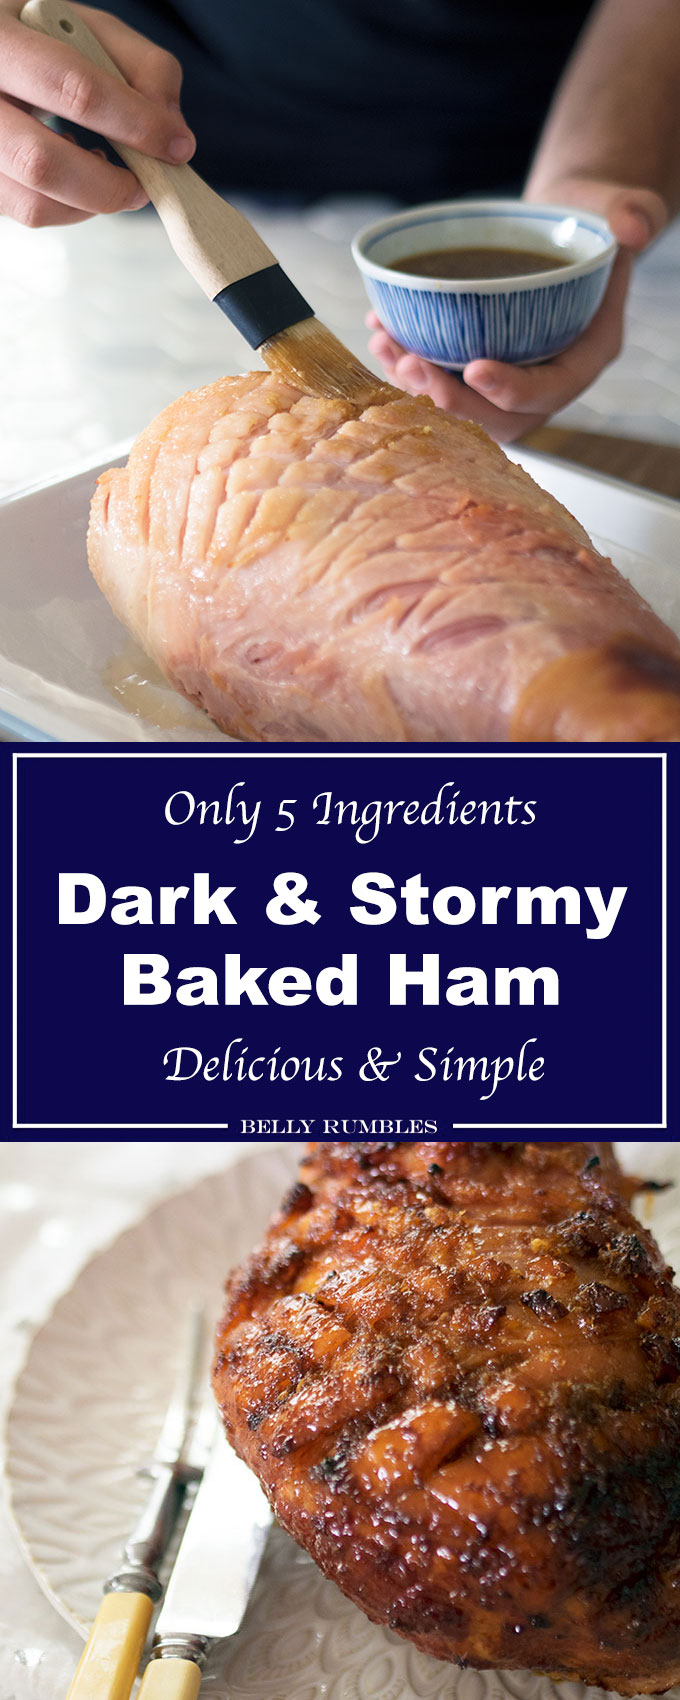 This dark and stormy baked ham is stickily delicious. The spiced rum, ginger, lime and sugar transport you to the Caribbean.